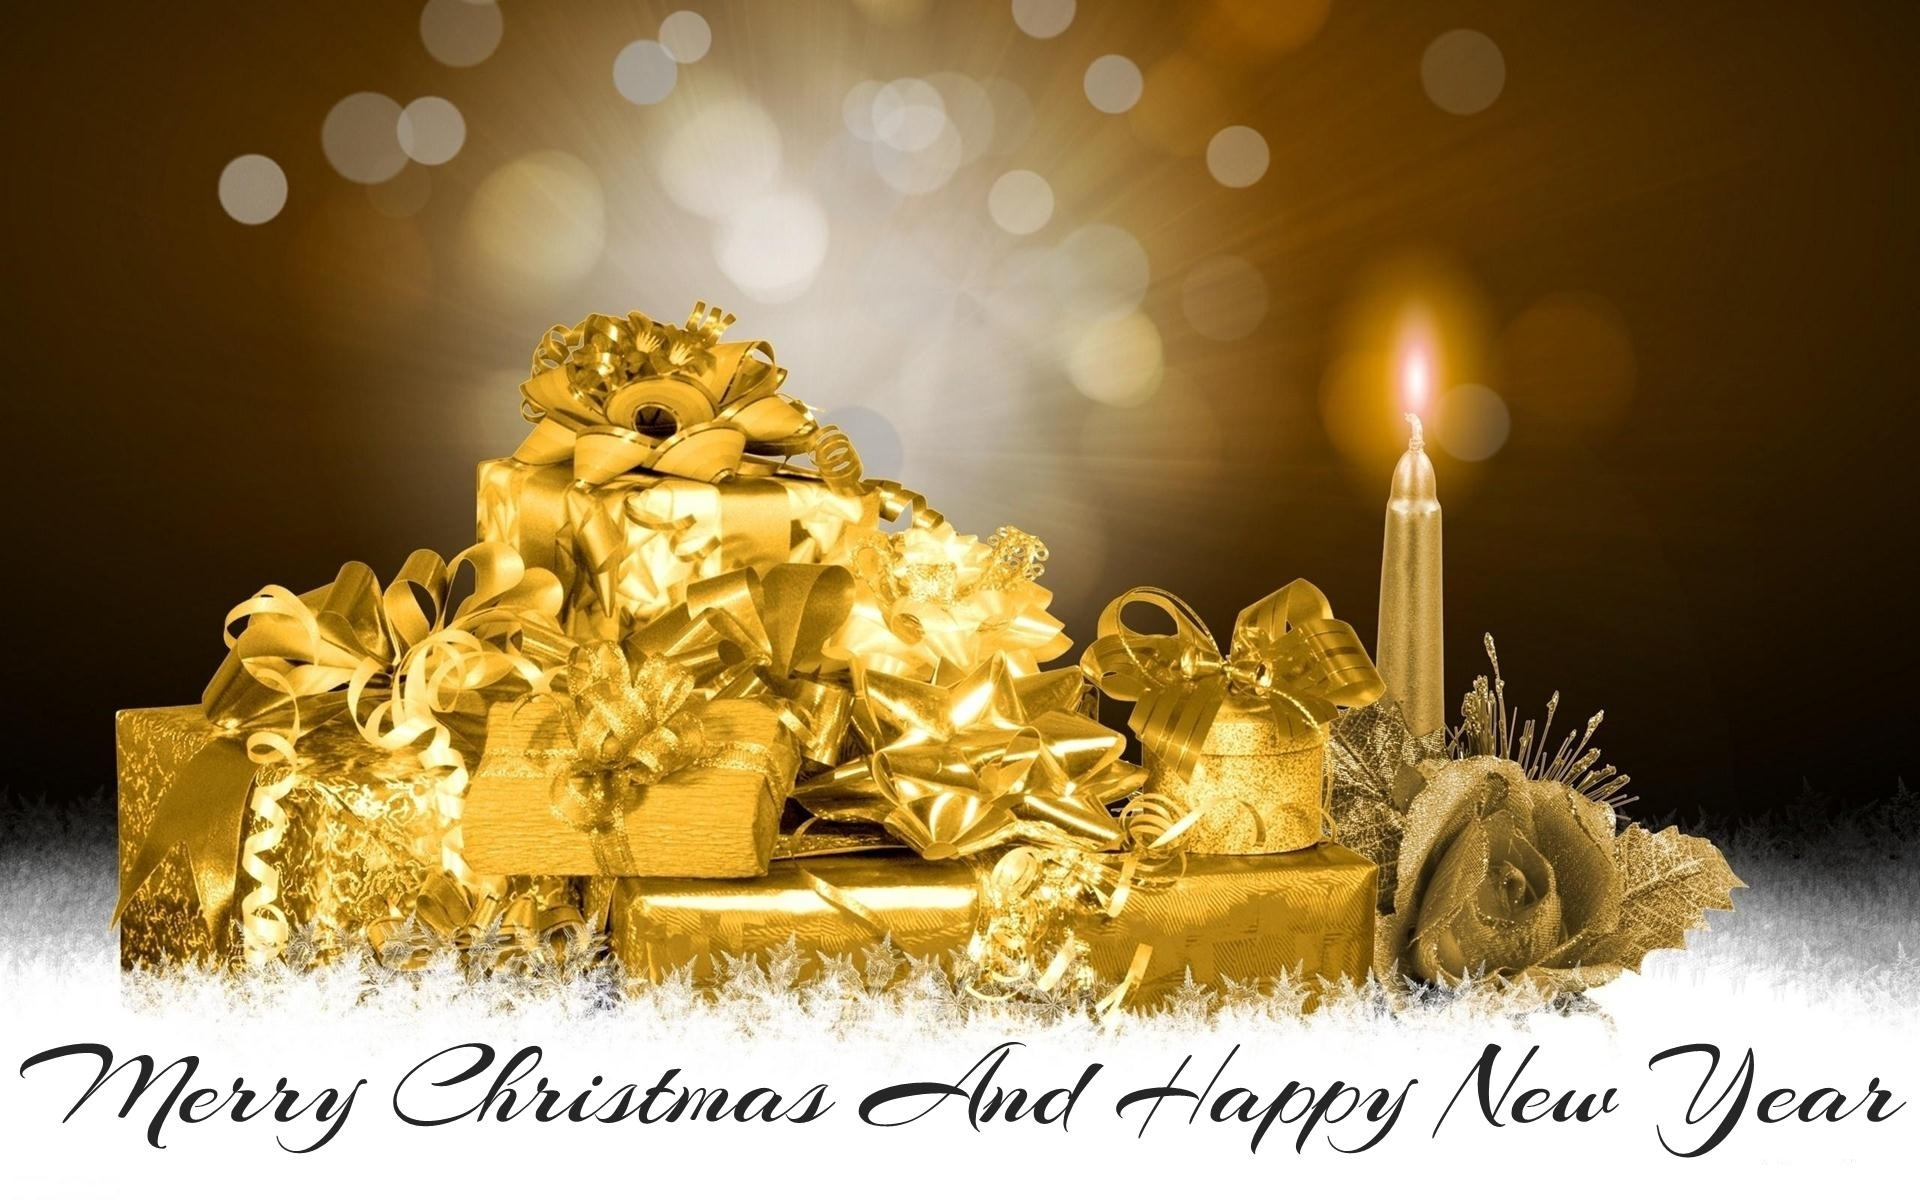 Merry Christmas And Happy New Year Wallpaper For Pc - Happy New Year Golden , HD Wallpaper & Backgrounds